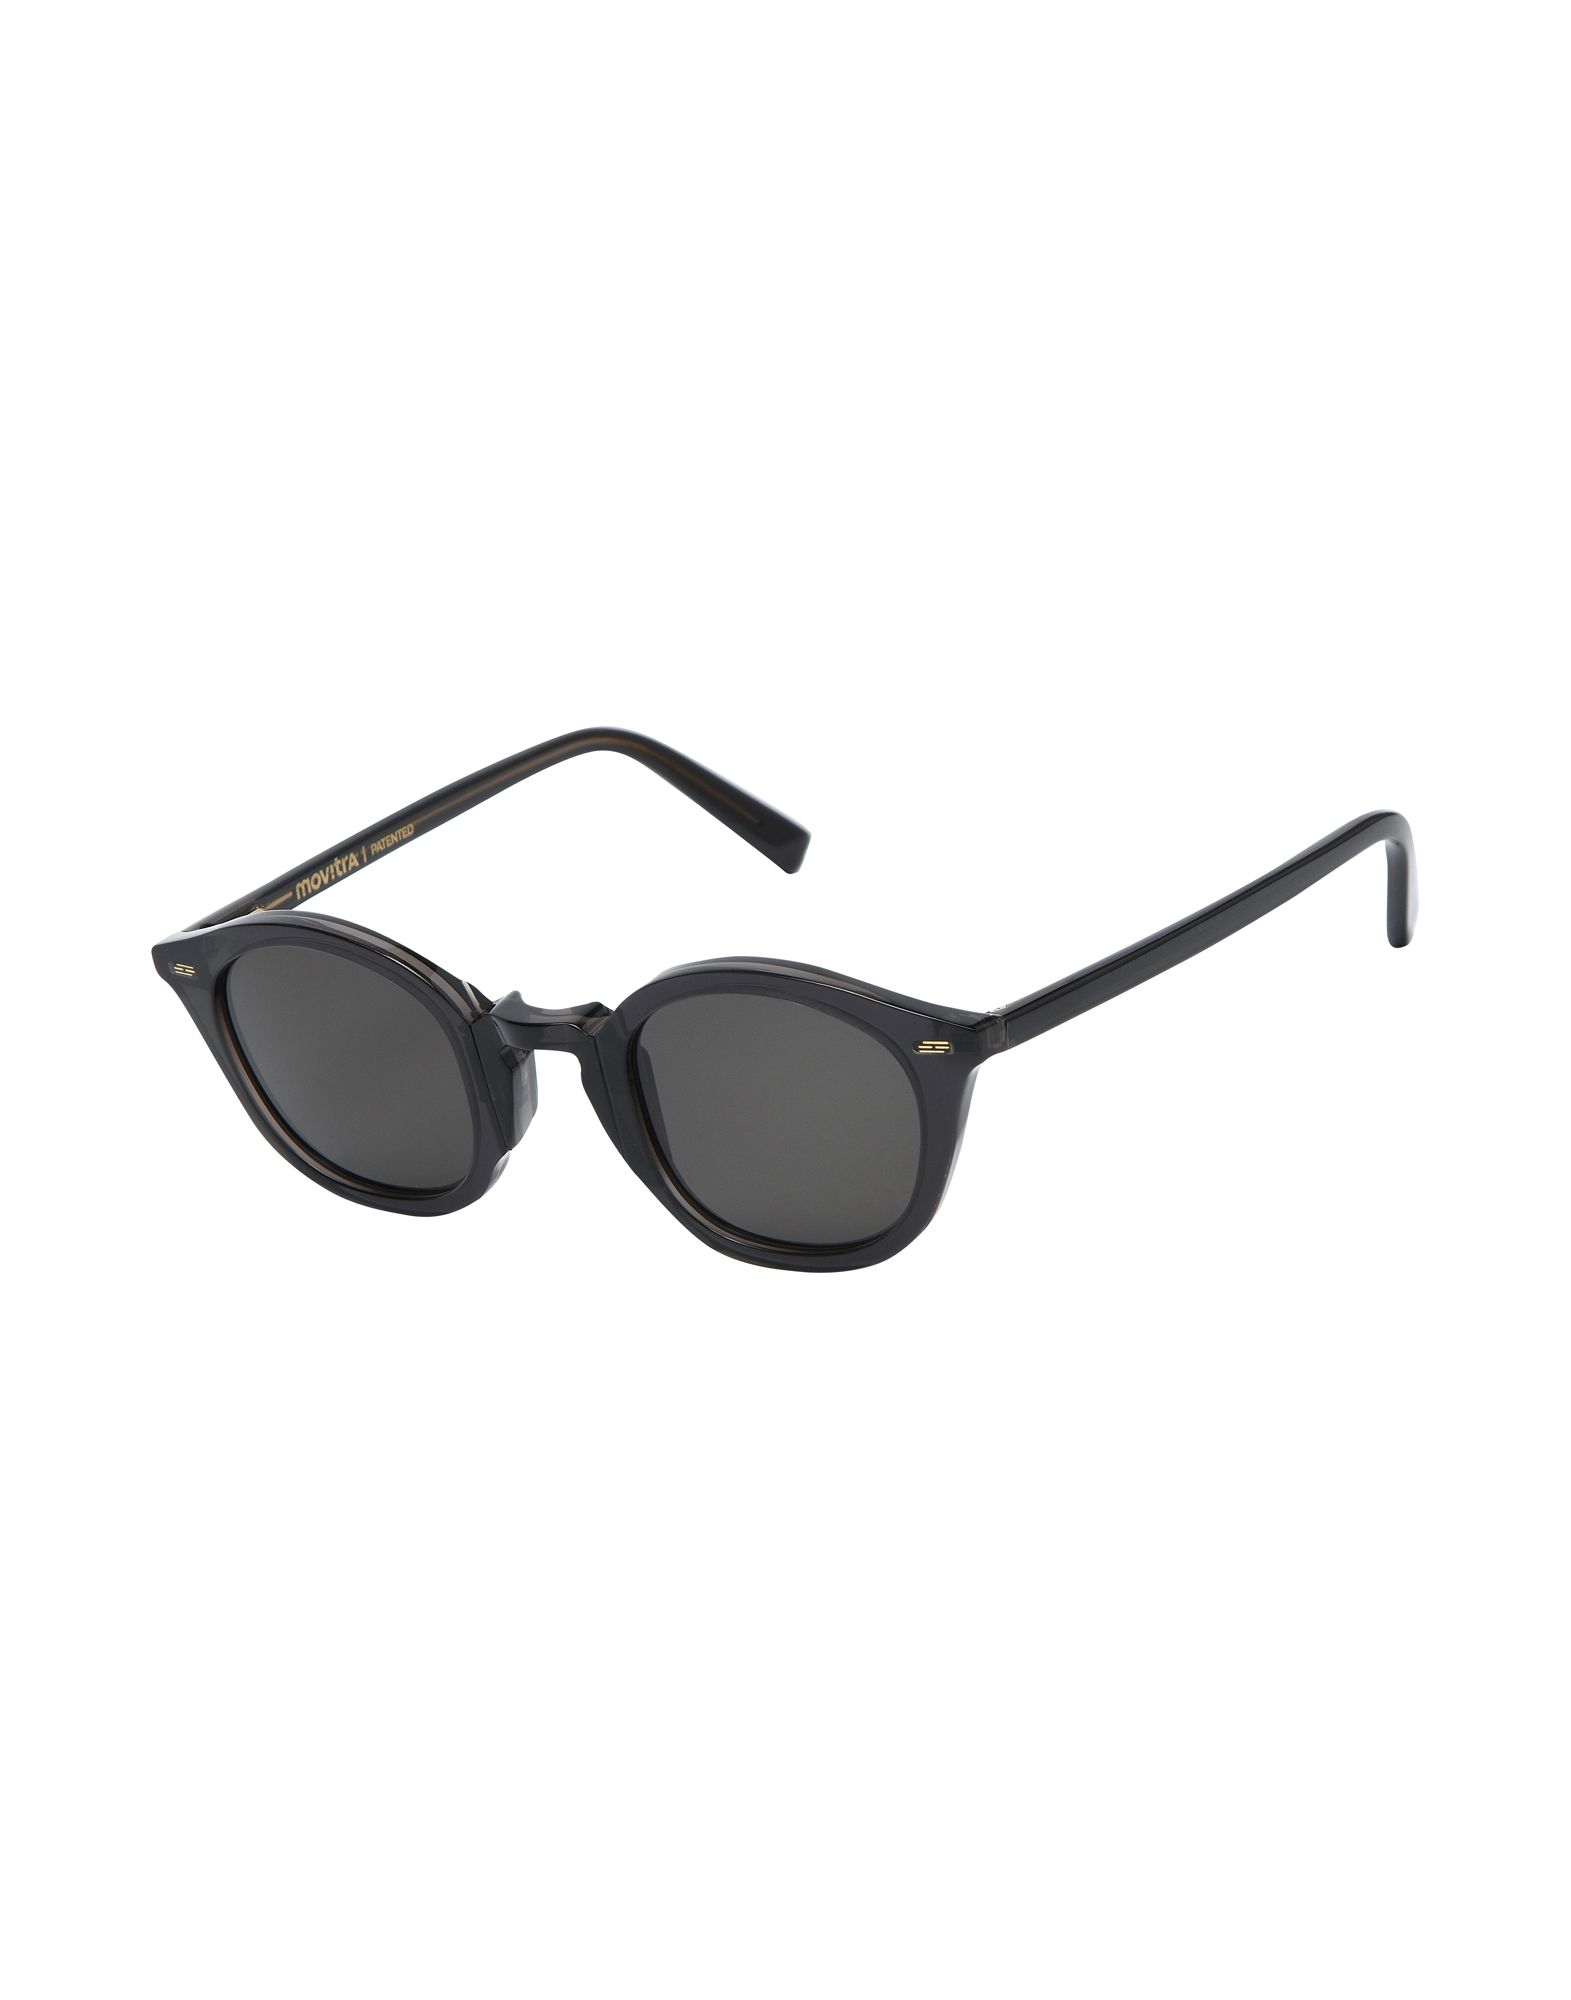 MOVITRA Sunglasses in Black